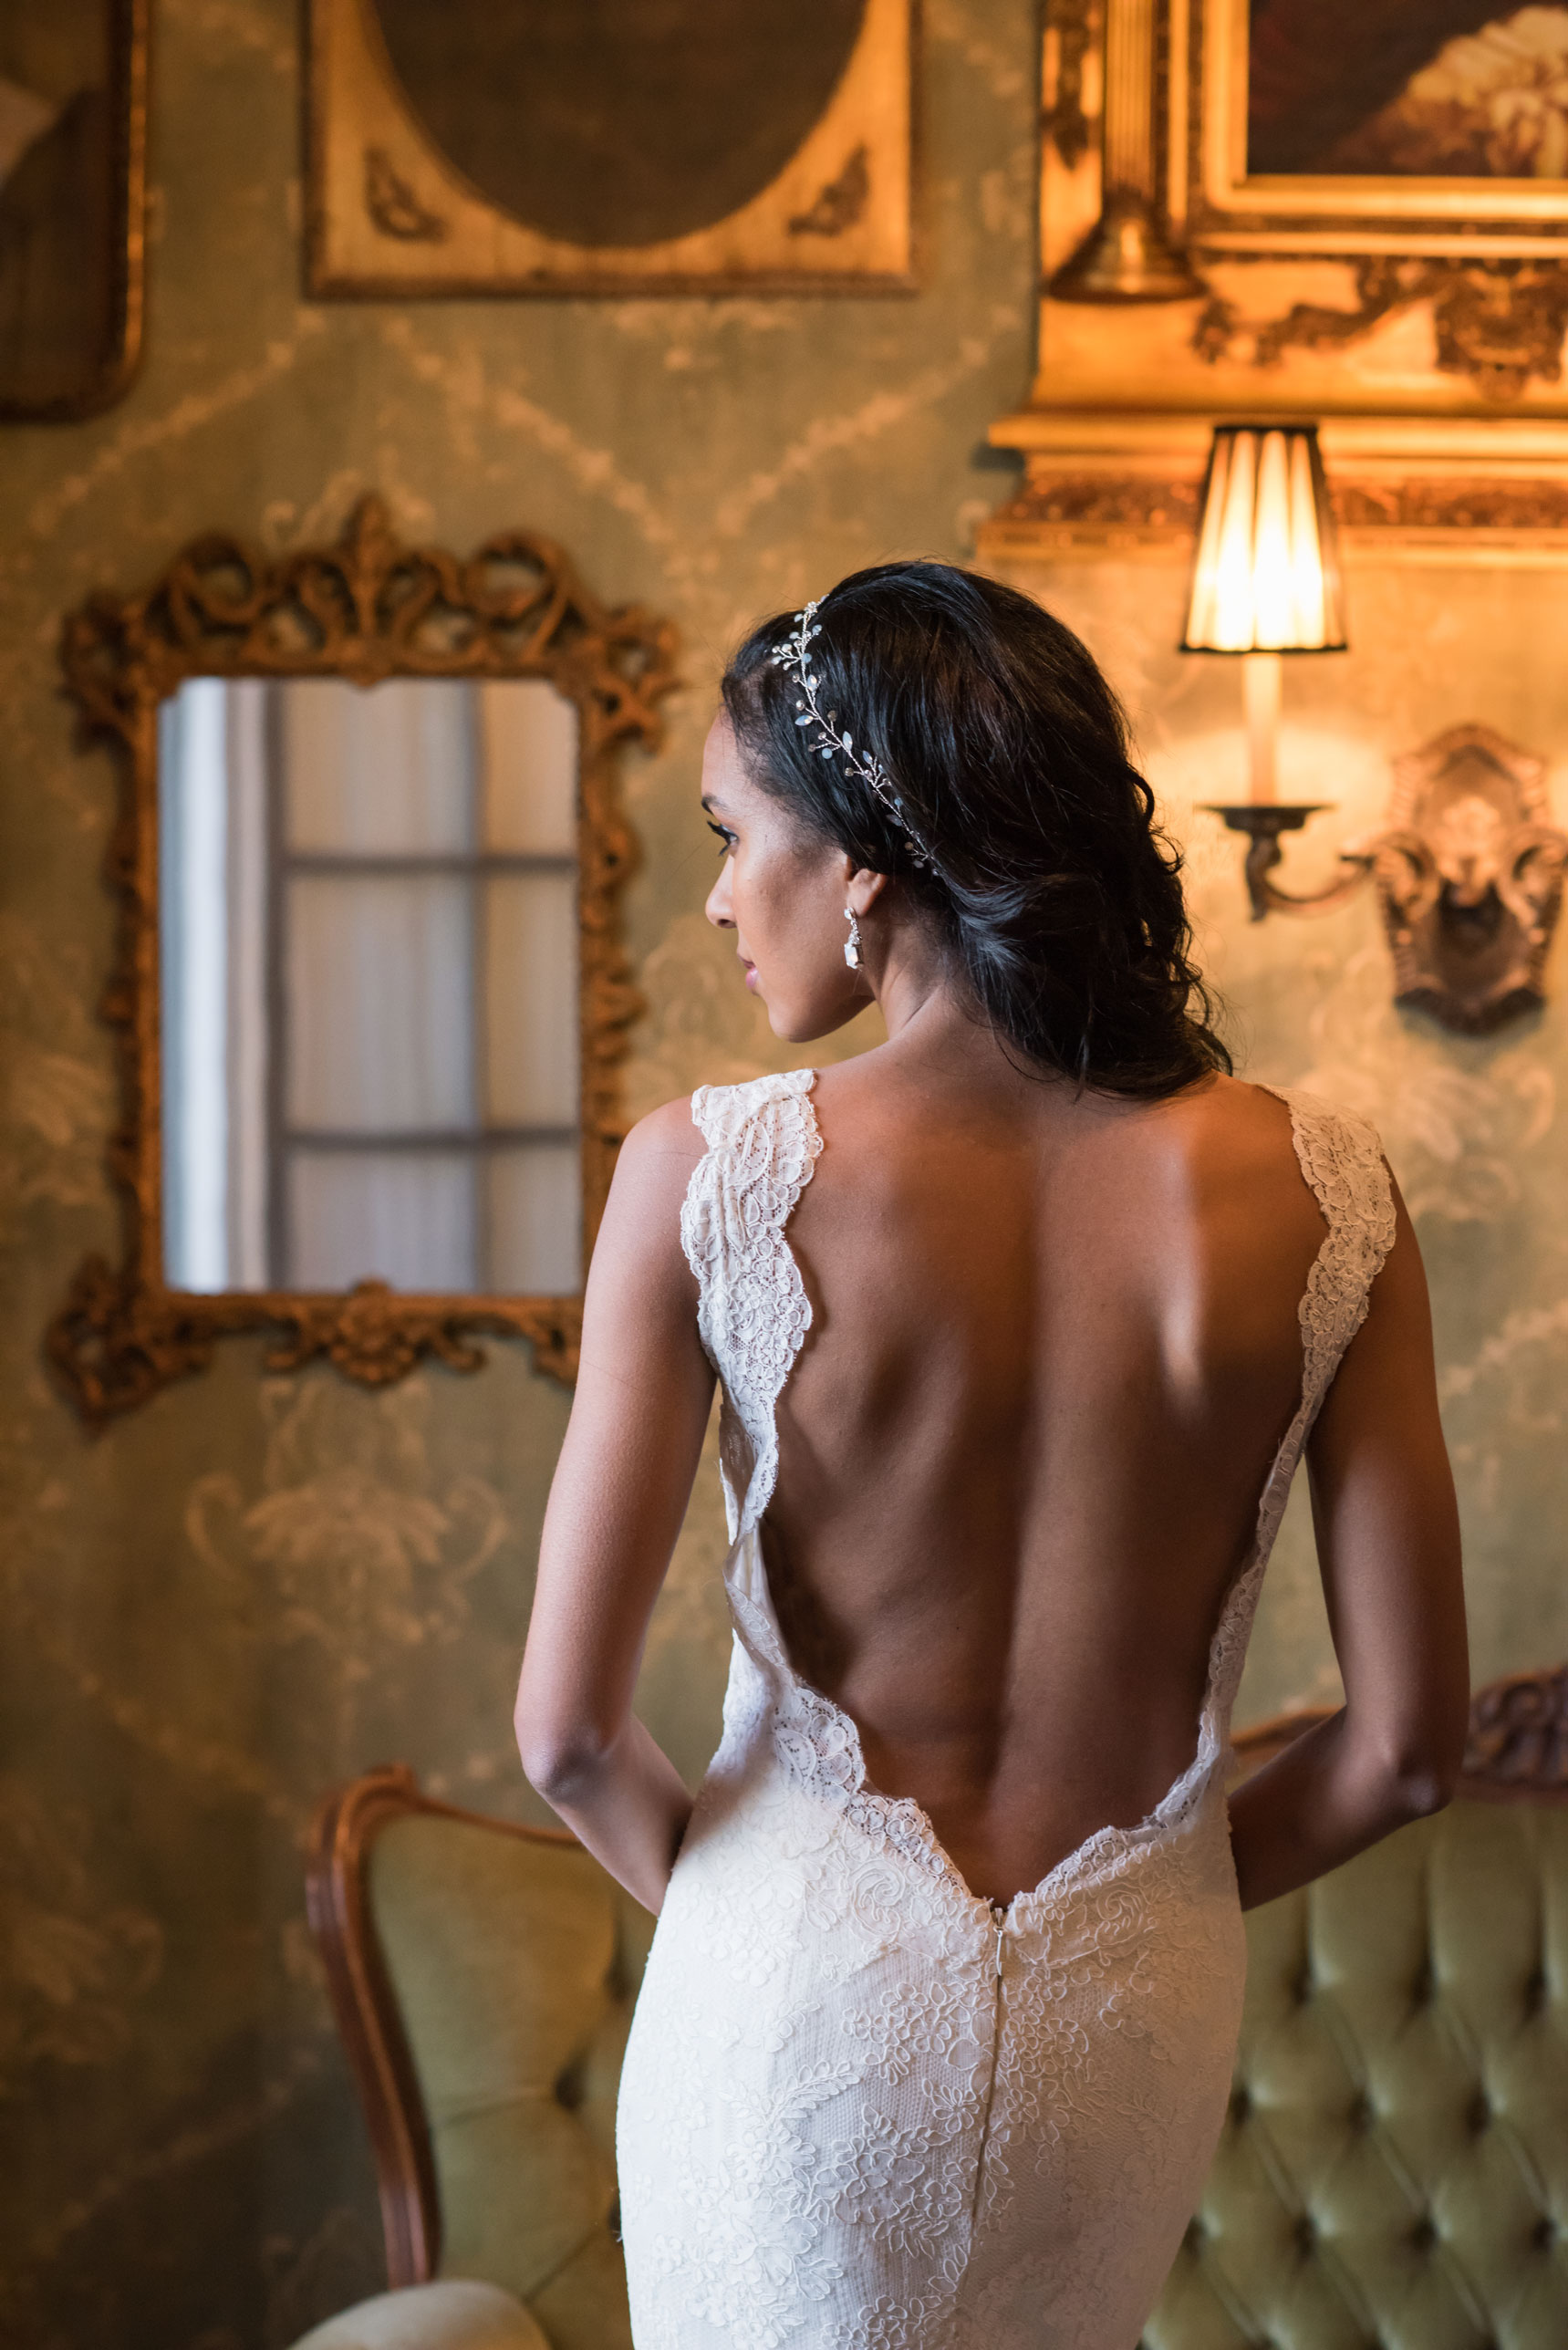 Bel-Aire-Bridal-Watters-KLK-Photography027.jpg